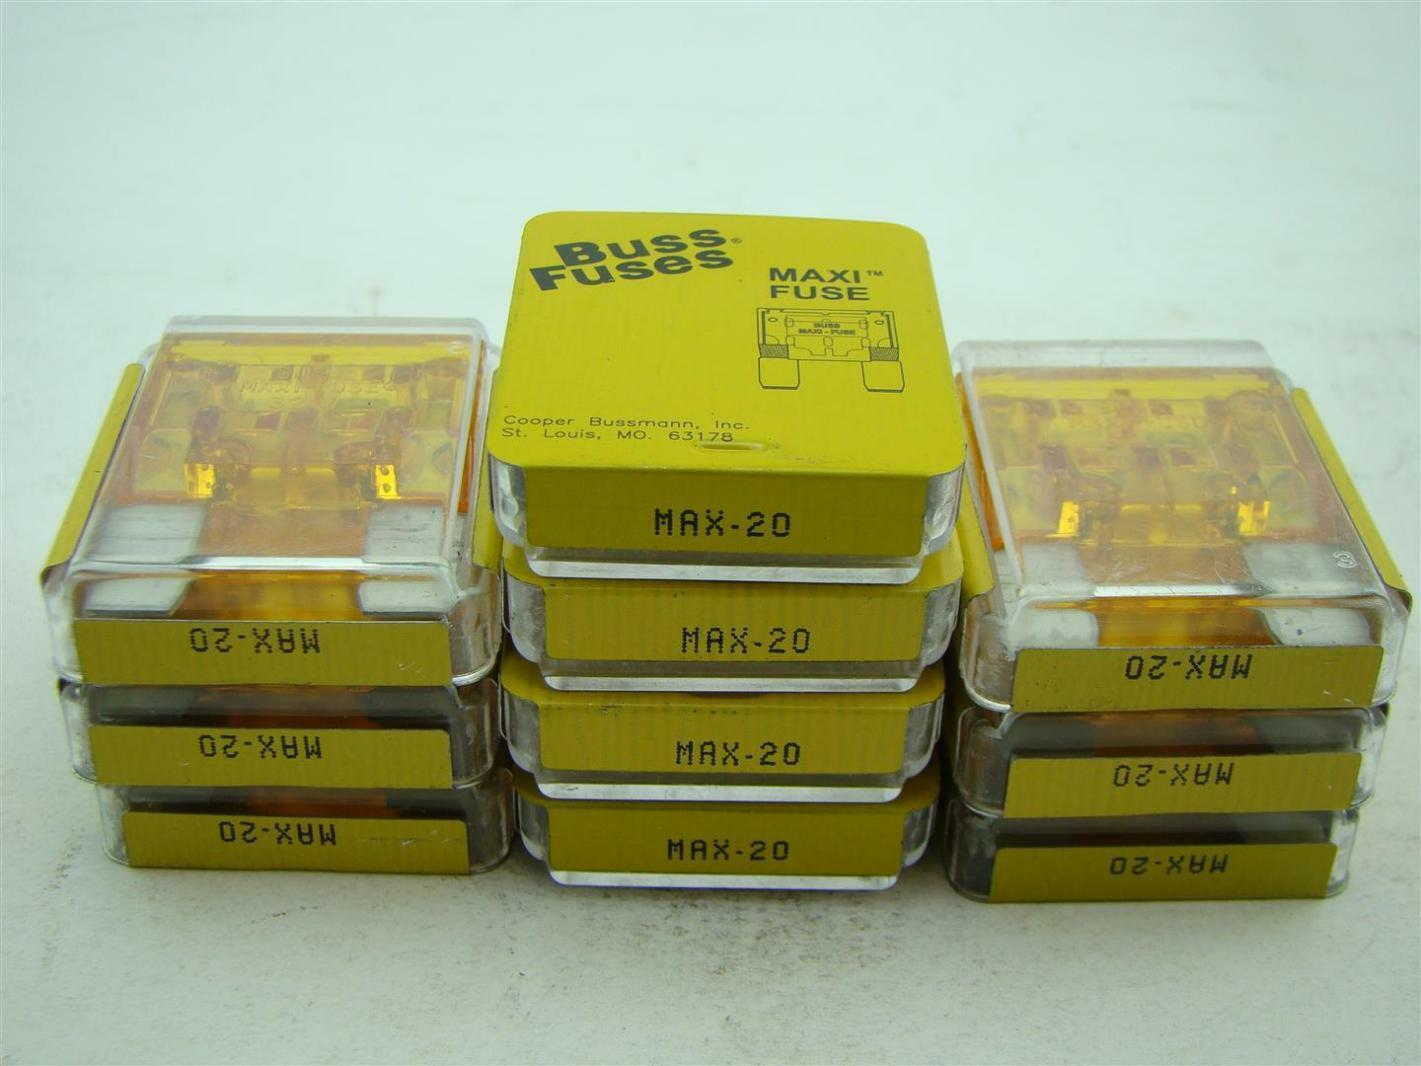 hight resolution of  10 pcs buss fuses maxi fuse max 20